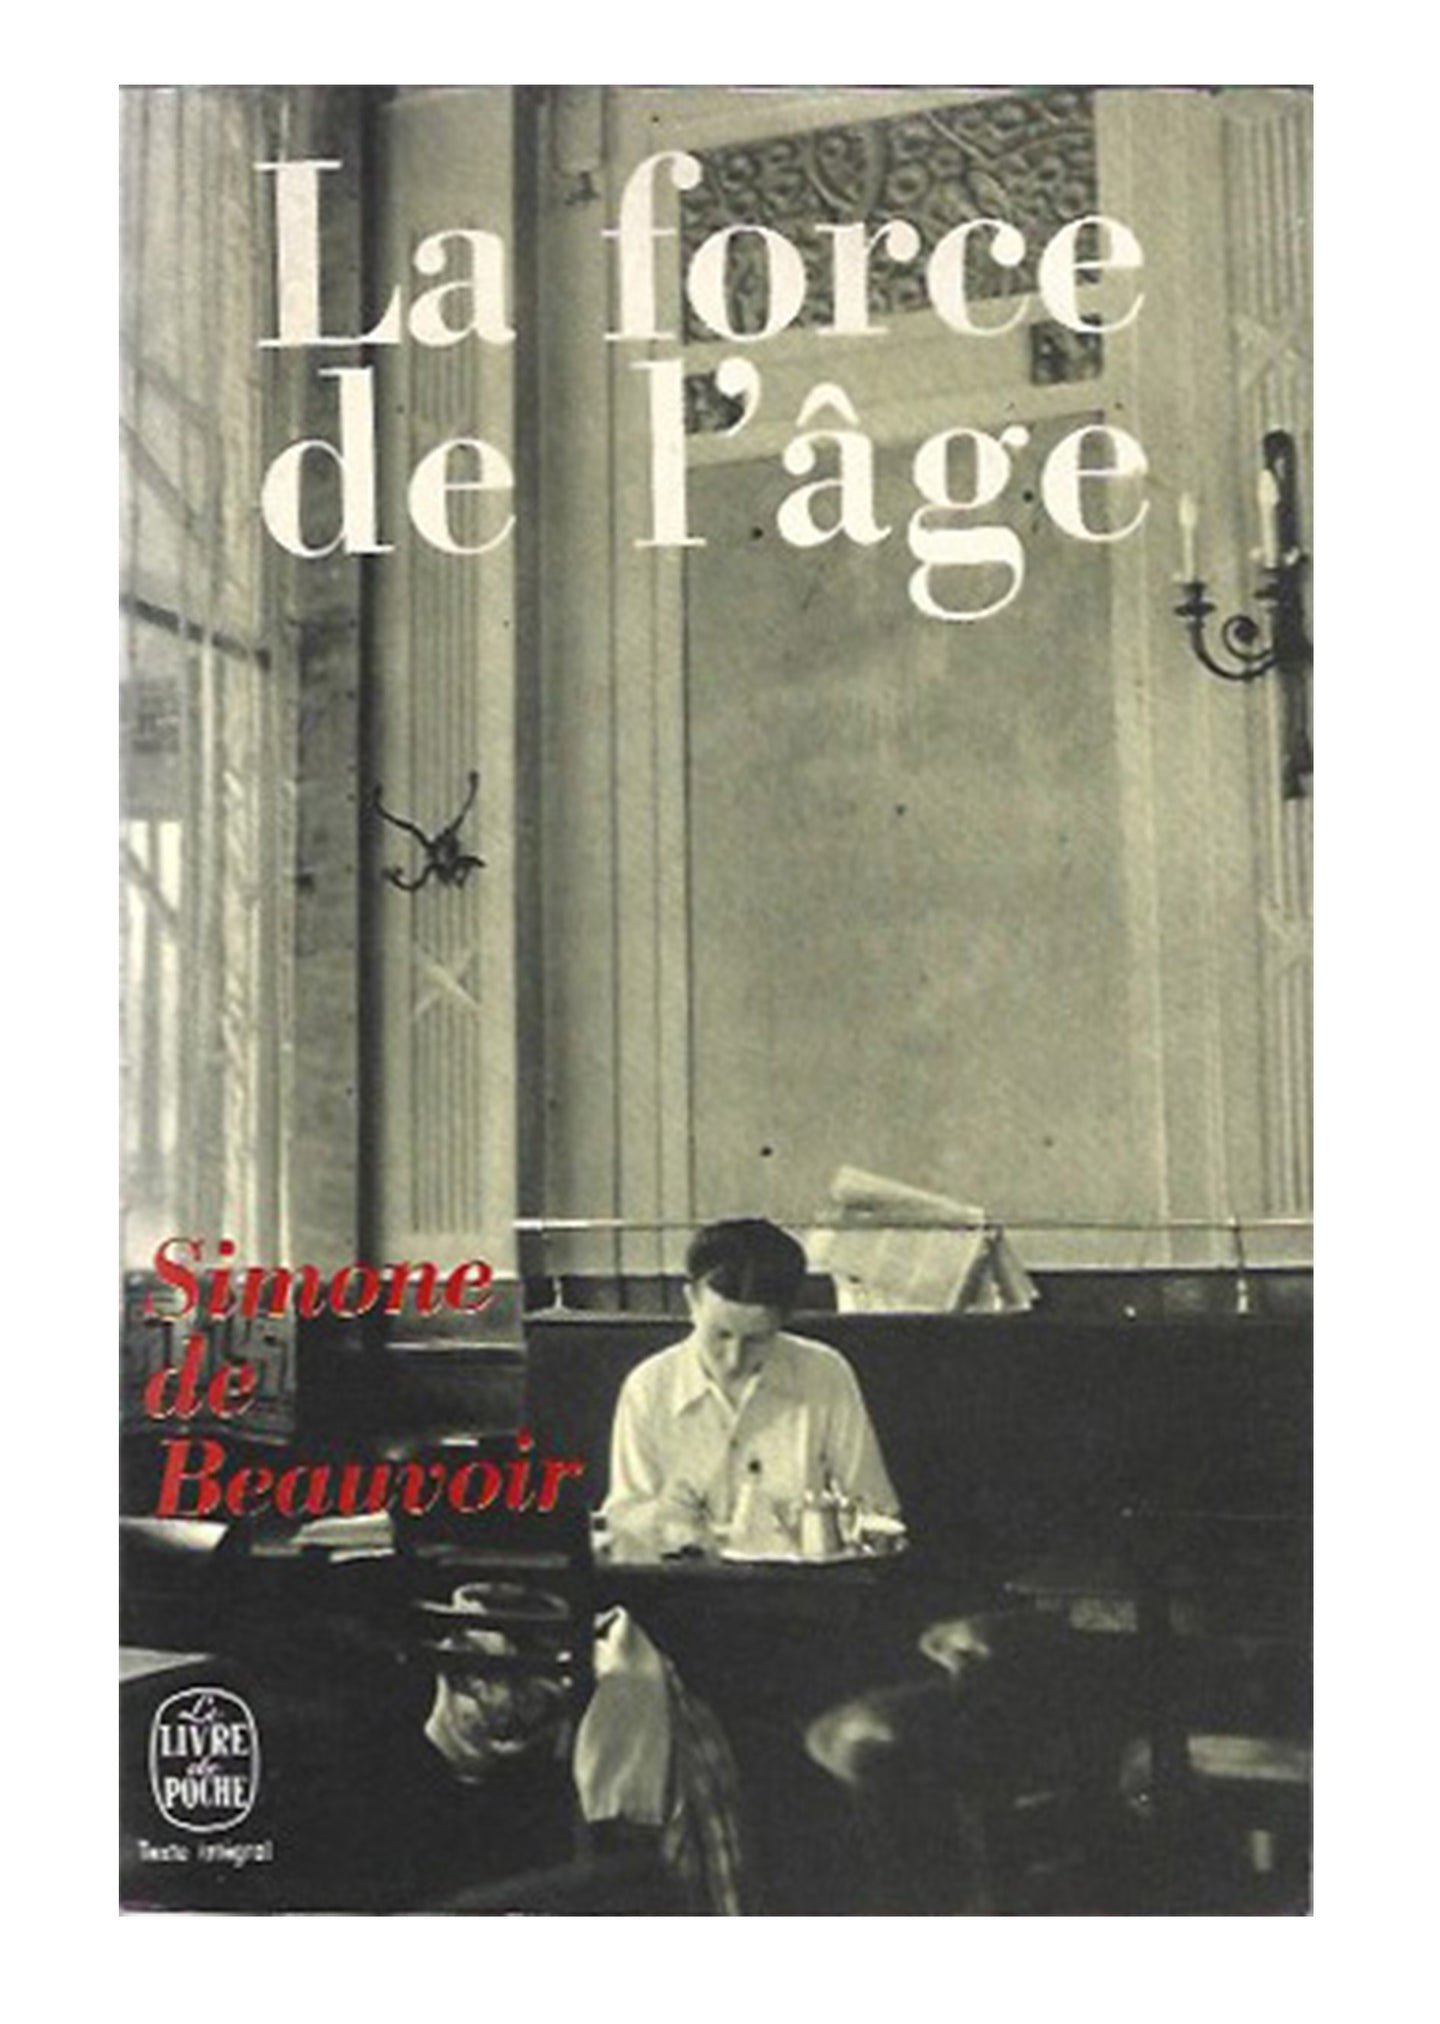 Simone de Beauvoir La Force de L'age